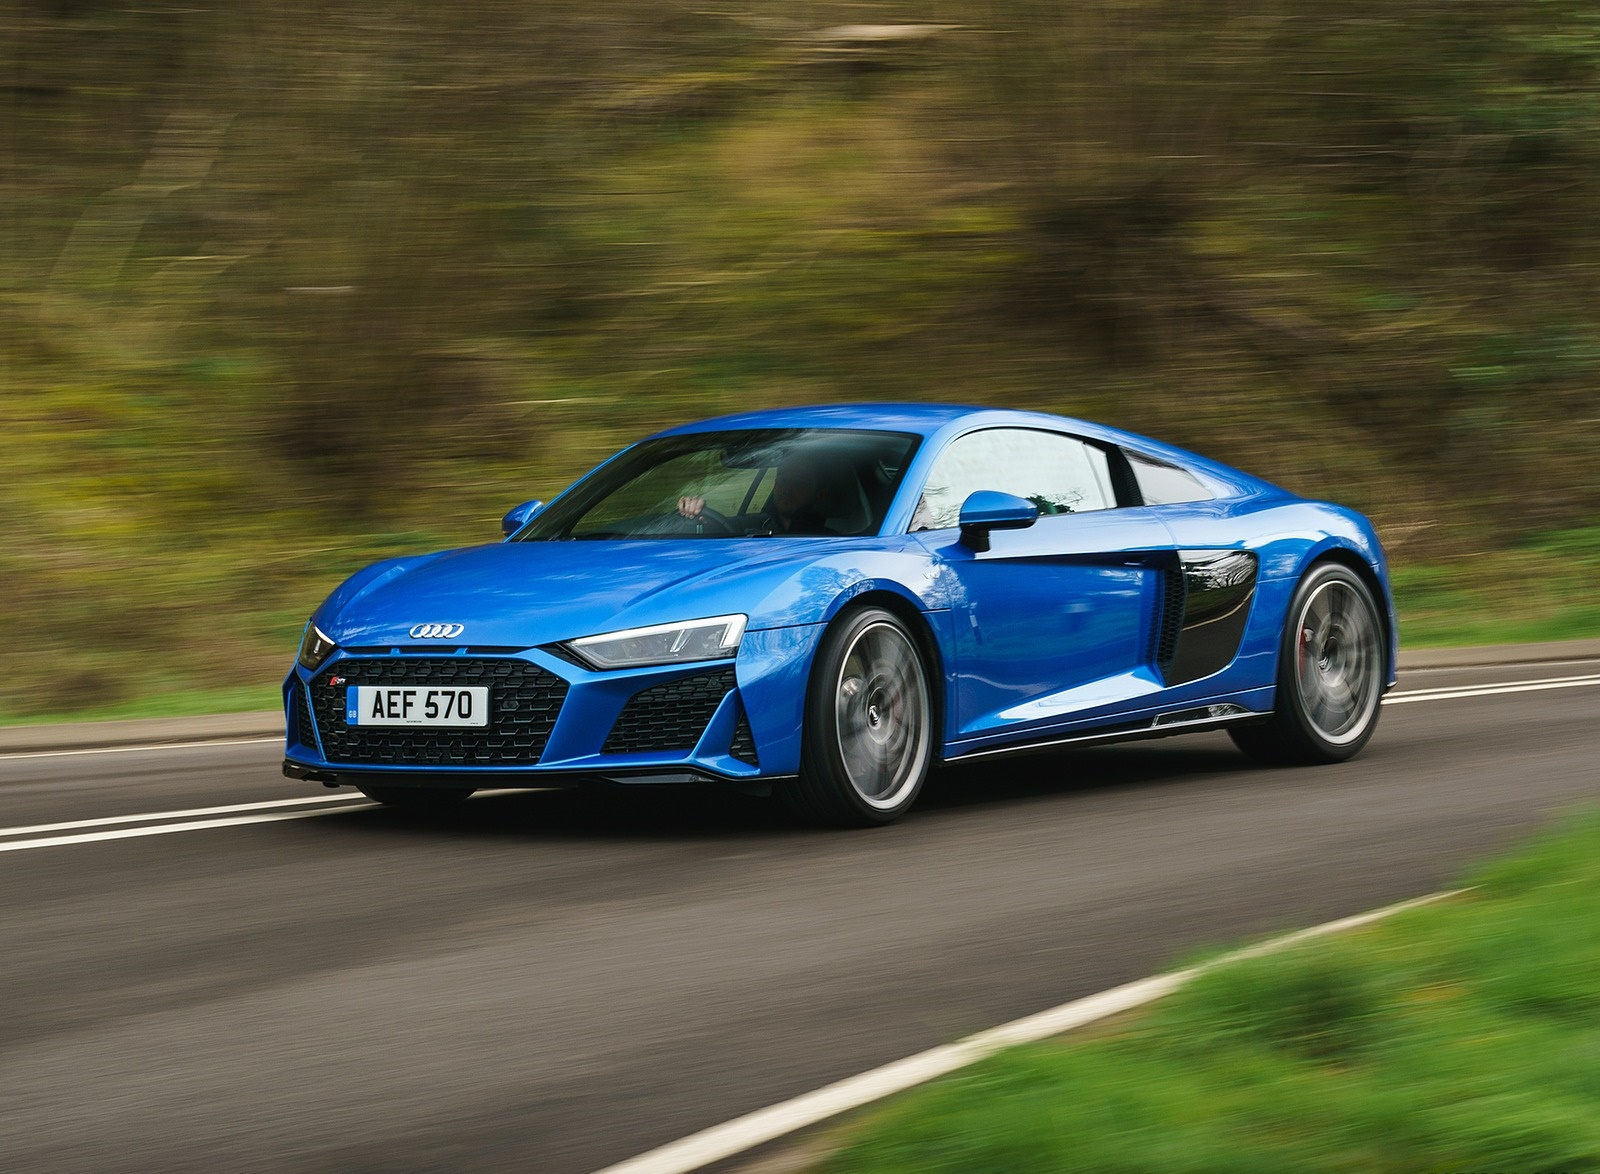 2019 Audi R8 V10 Coupe quattro (UK-Spec) Front Three-Quarter Wallpaper (9)